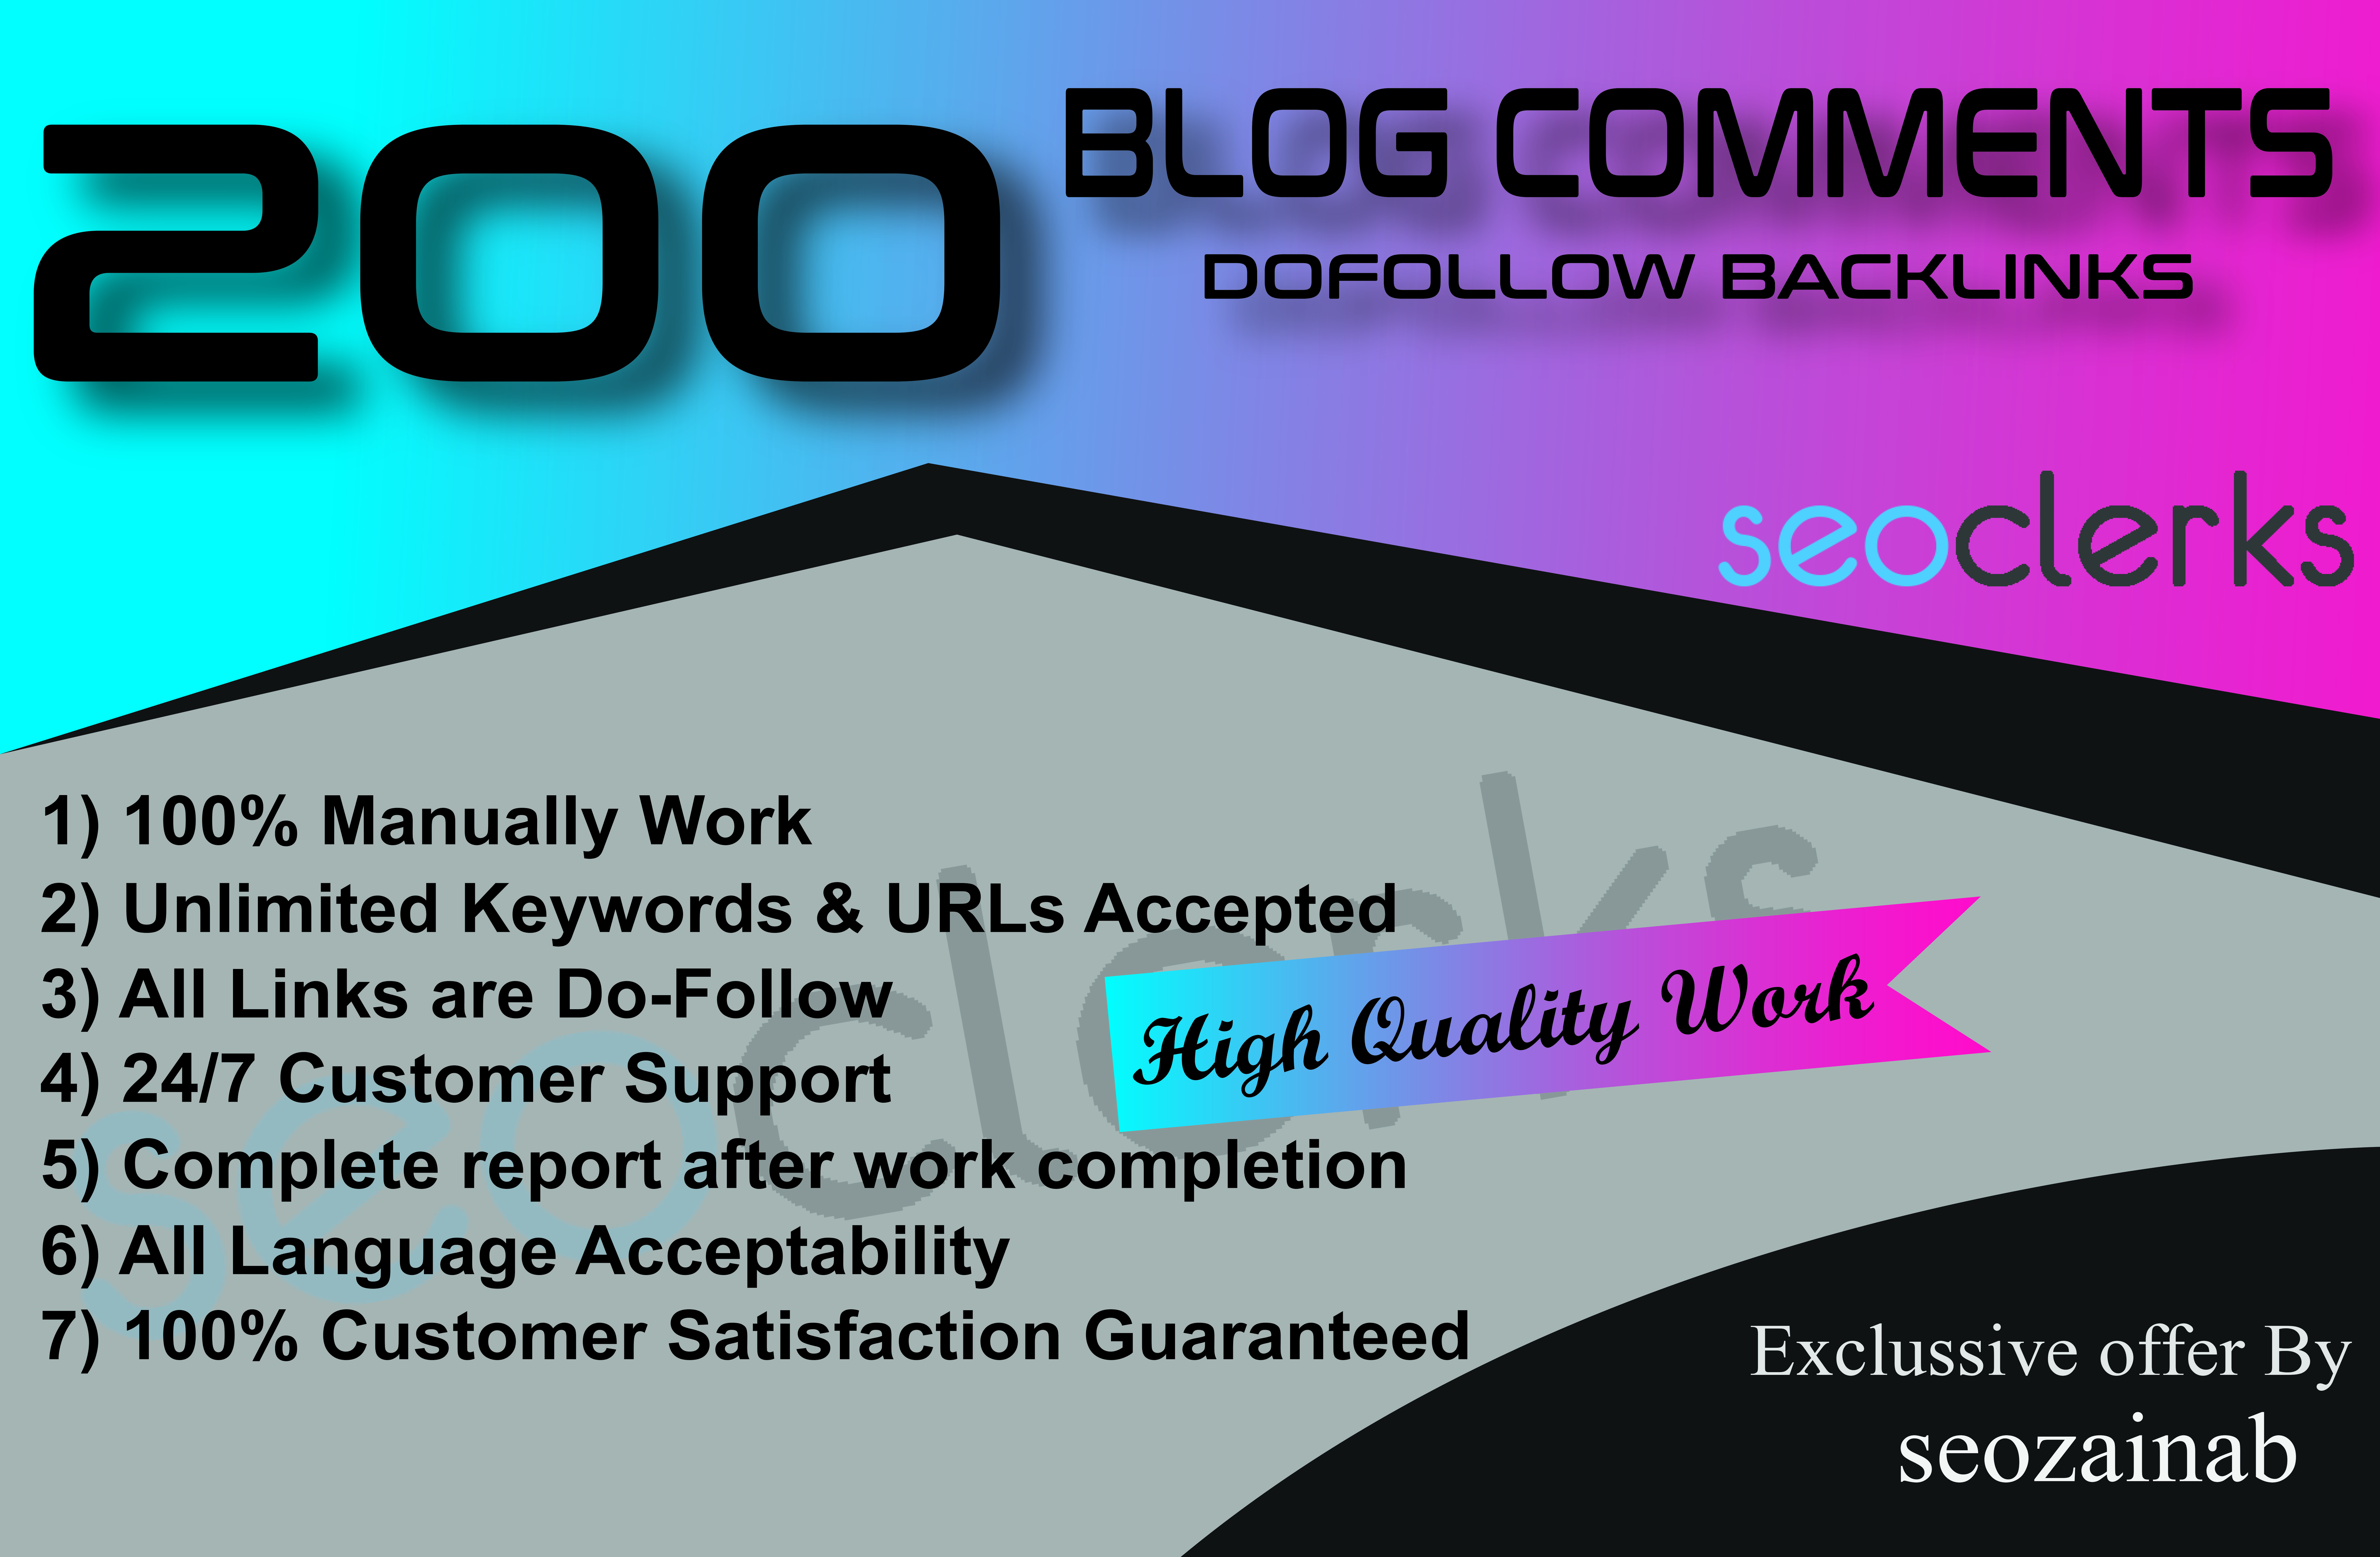 I Will Provide 200 Dofollow Blog Comments Backlinks in High Authority